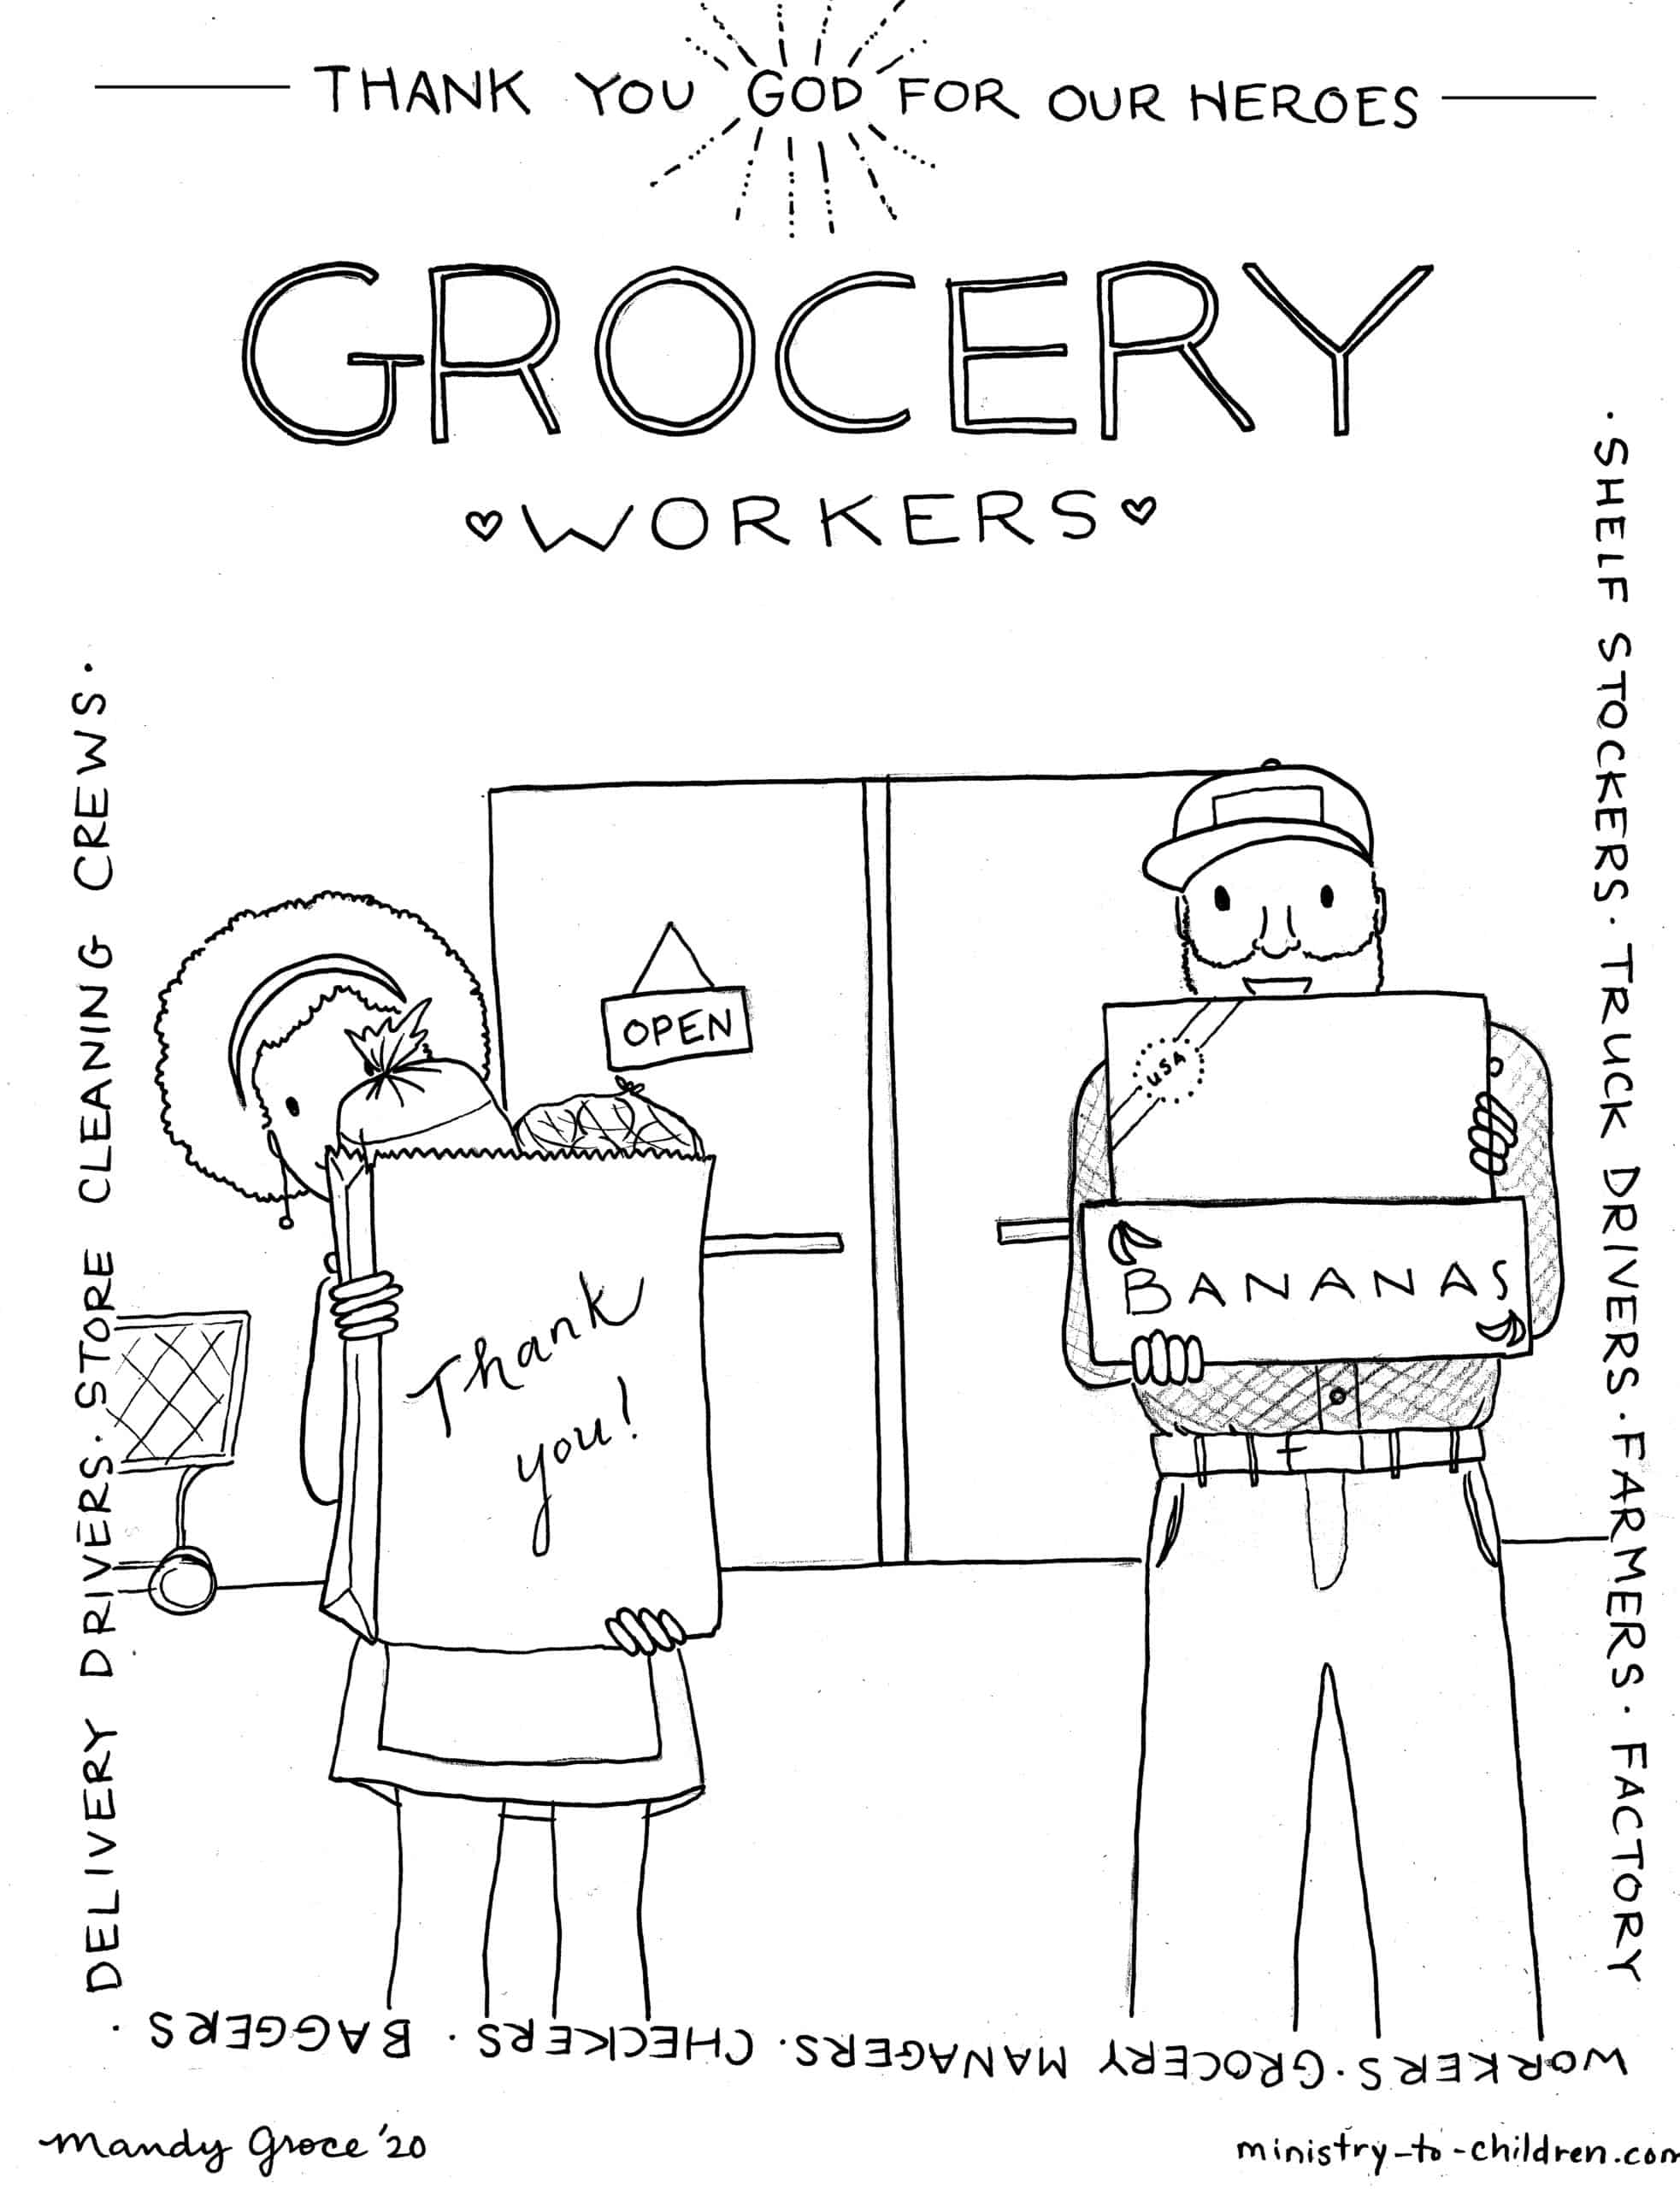 Coloring Page: Grocery Workers are Everyday Heroes